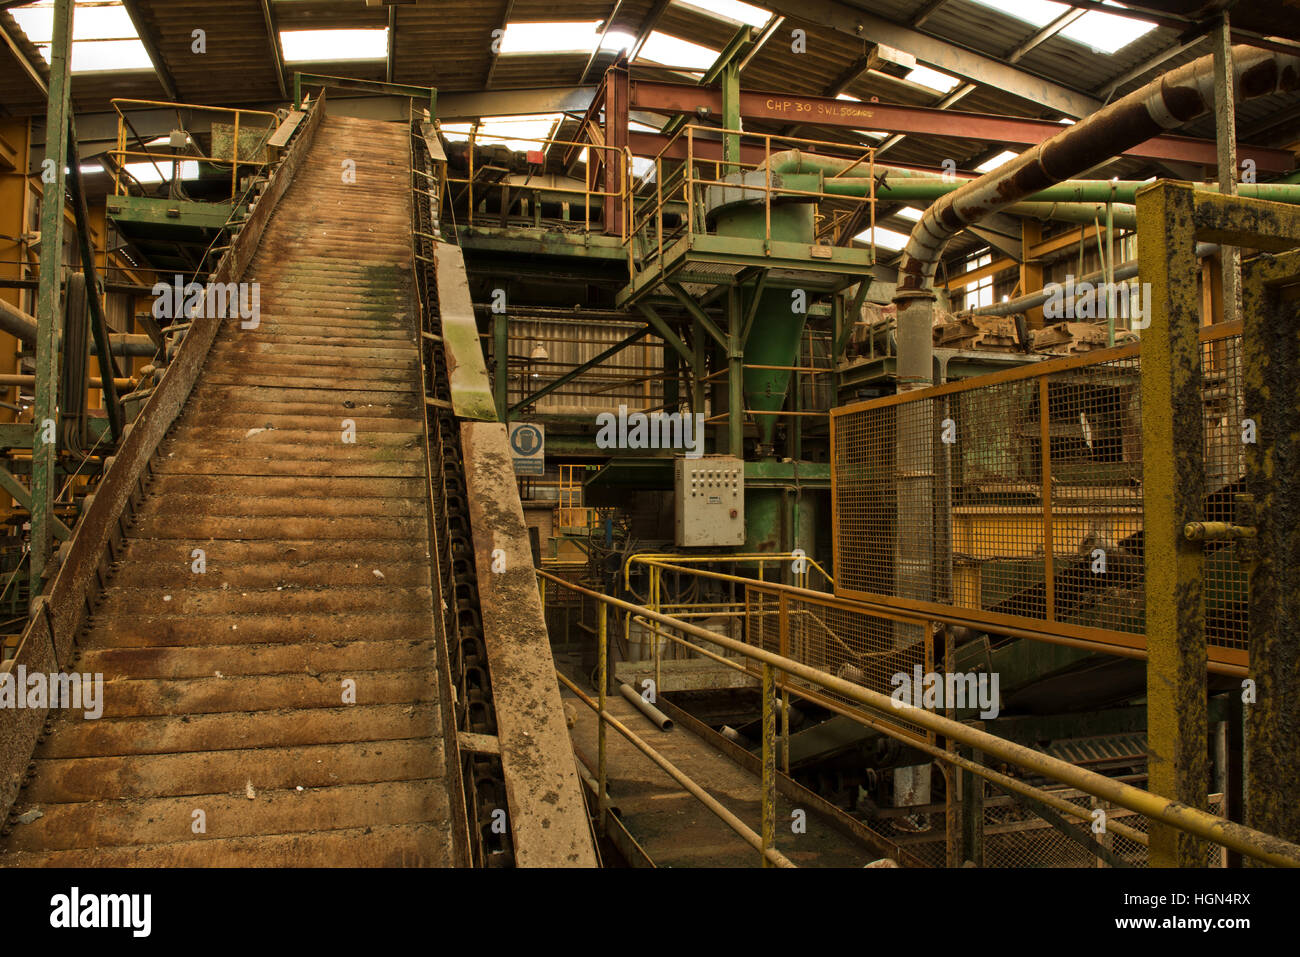 A conveyor within the now disused Clock House Brickworks, Capel, Near Dorking, Surrey, UK - Stock Image